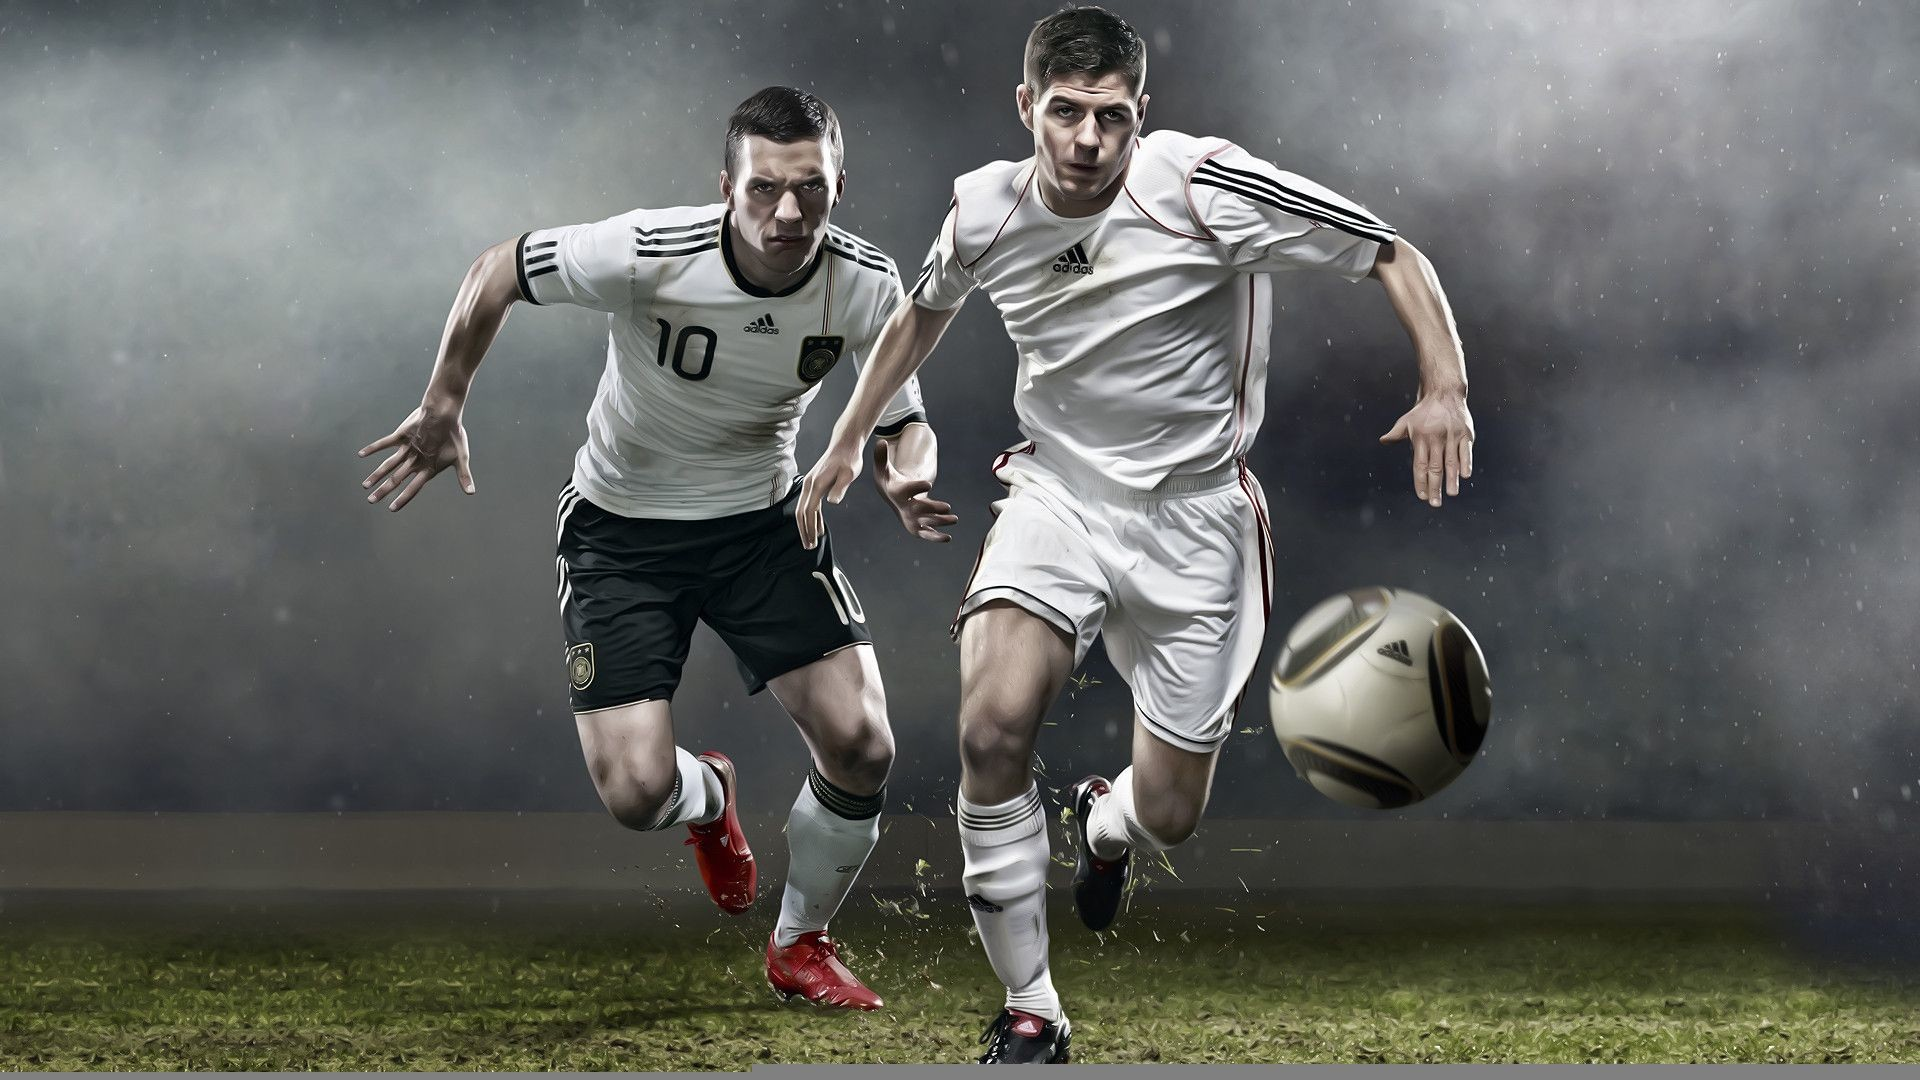 Futbol Soccer Nike Wallpapers 2018 65 Background Pictures